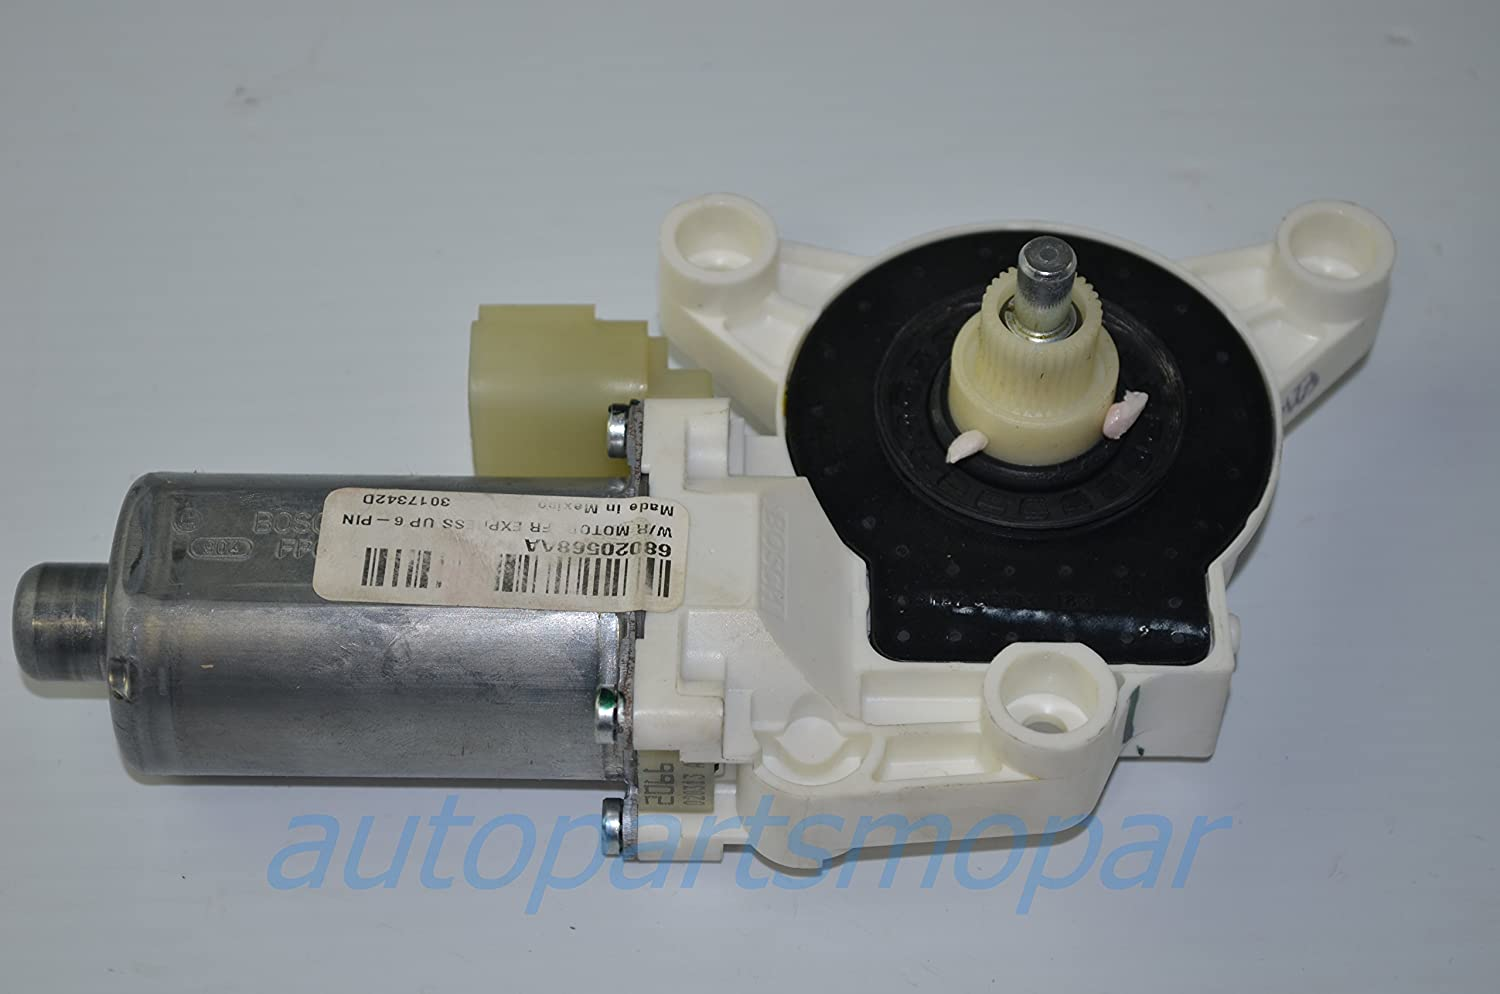 Mopar 6802 0568AA, Power Window Motor mopar 0458 9170ah power window motor